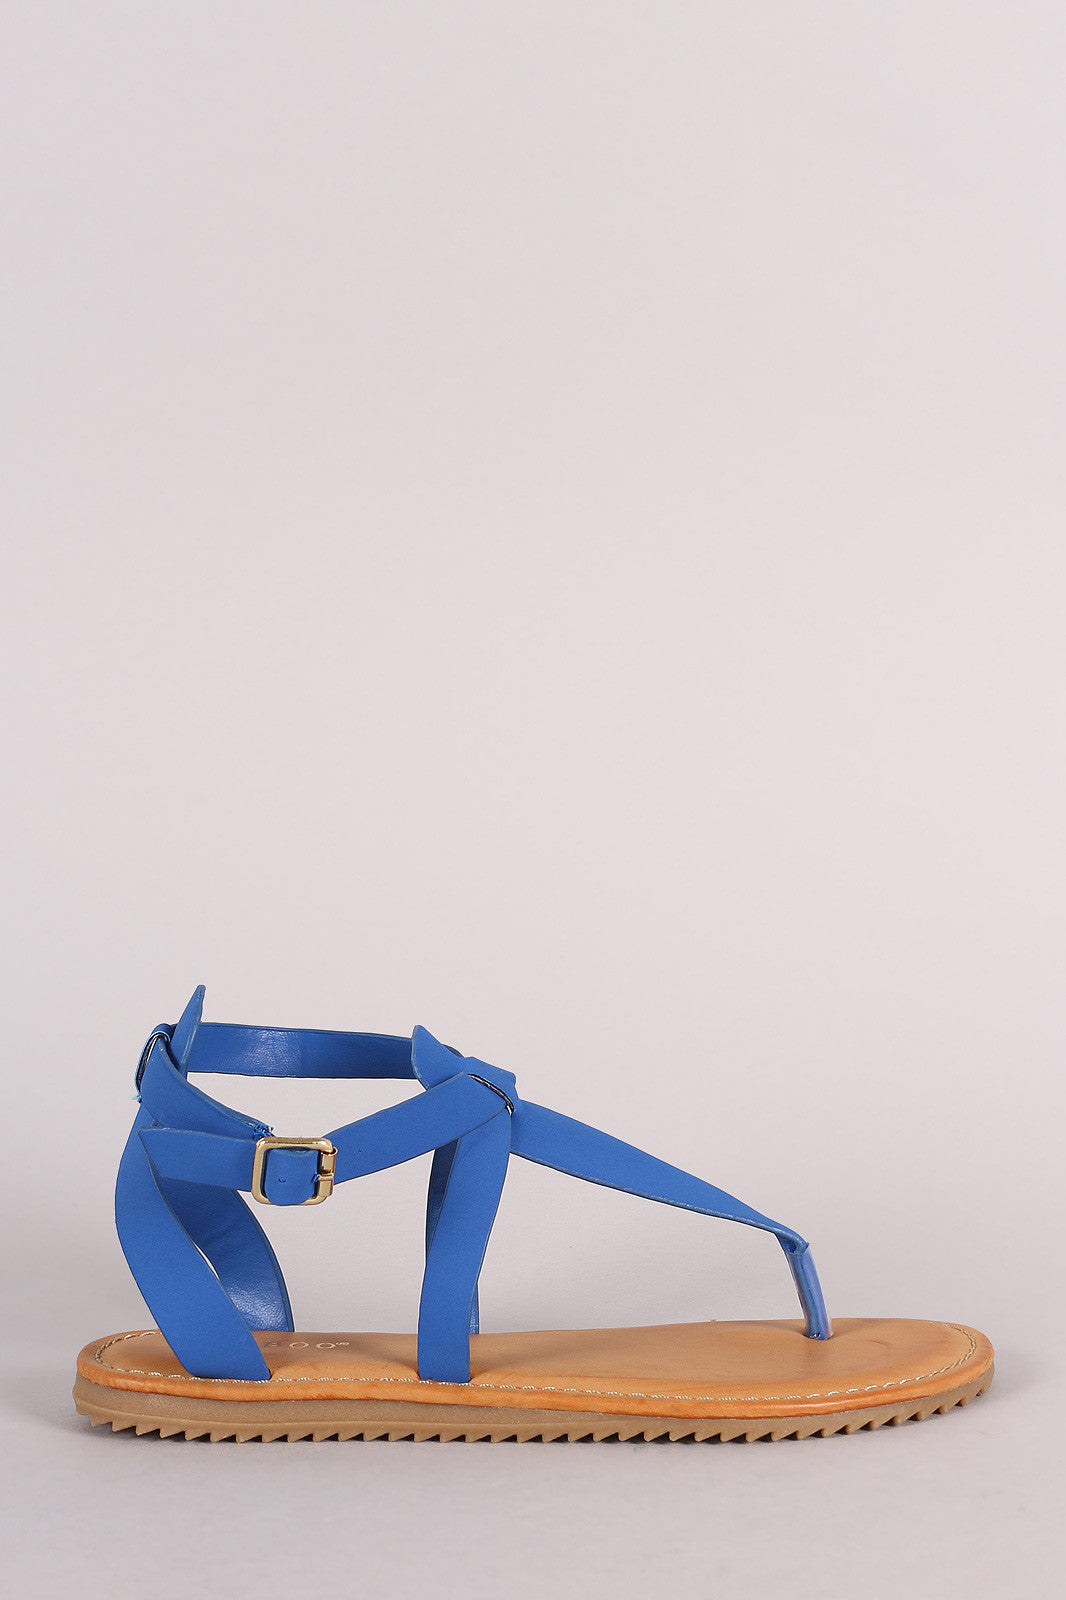 Bamboo Nubuck Lug Sole Crisscross Ankle Strap Thong Flat Sandal - Thick 'N' Curvy Shop - 4